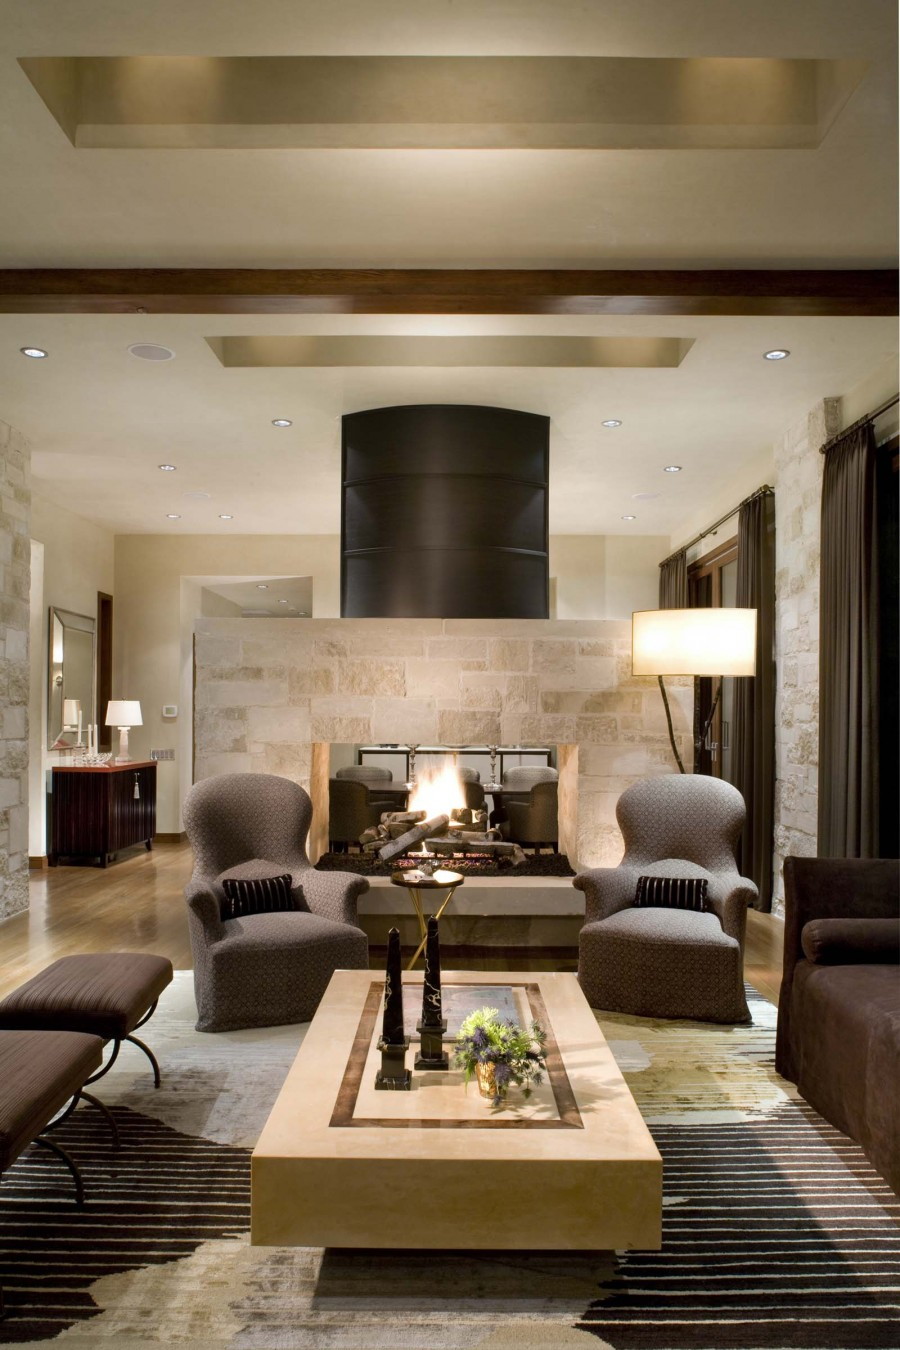 16 fabulous earth tones living room designs decoholic for Contemporary interior design ideas